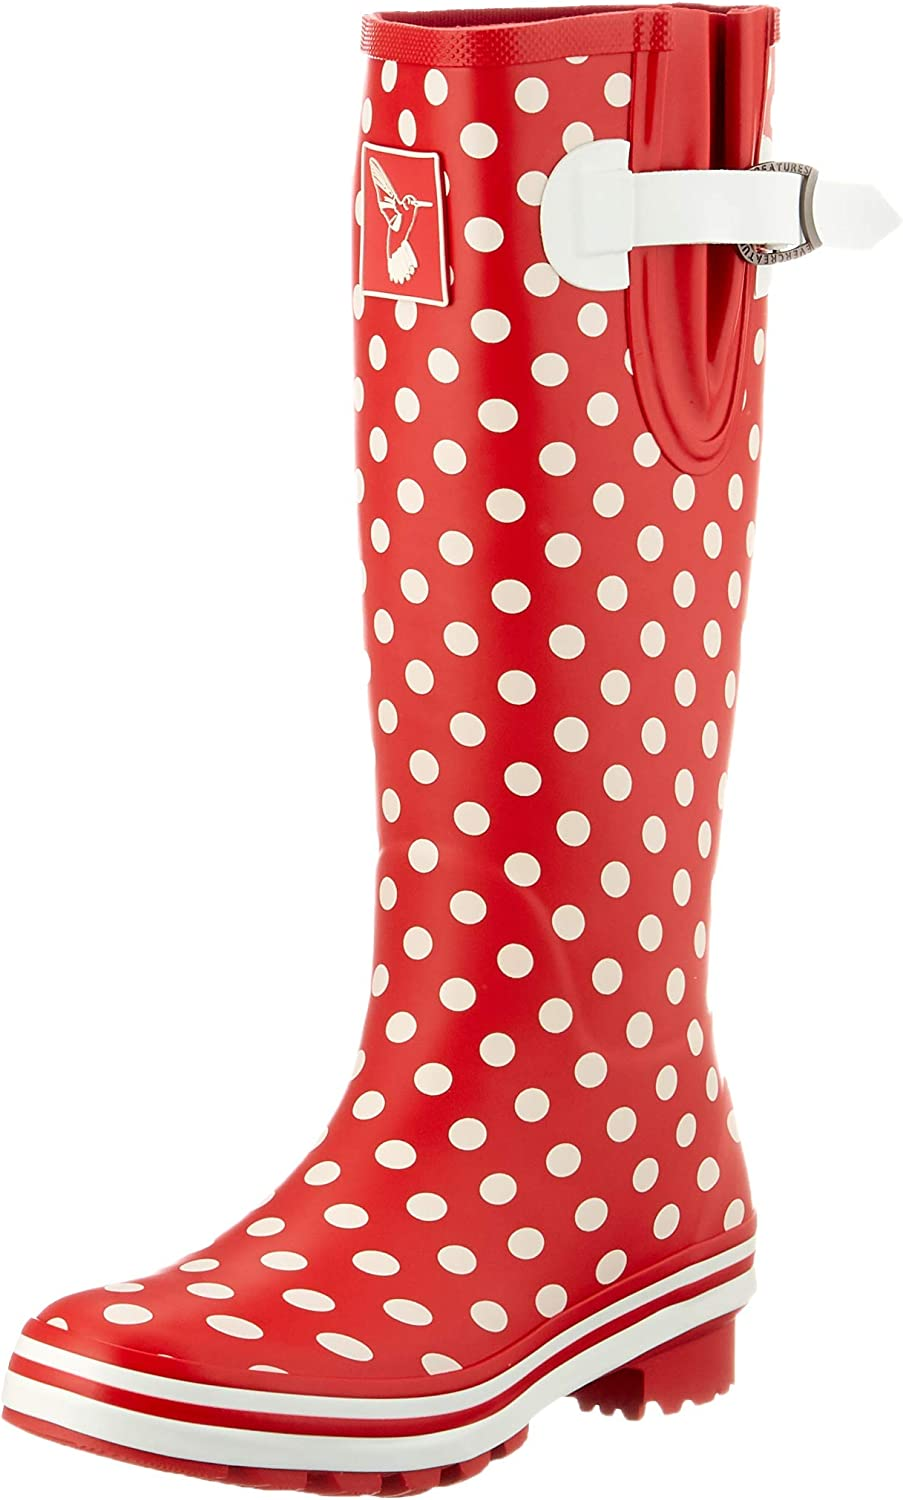 Evercreatures Rain Boots for Women Waterproof Boots Garden Shoes Outdoor Use with Comfortable Insole Knee High Rubber Rain Boot Gumboots Rain Footwear Wellies